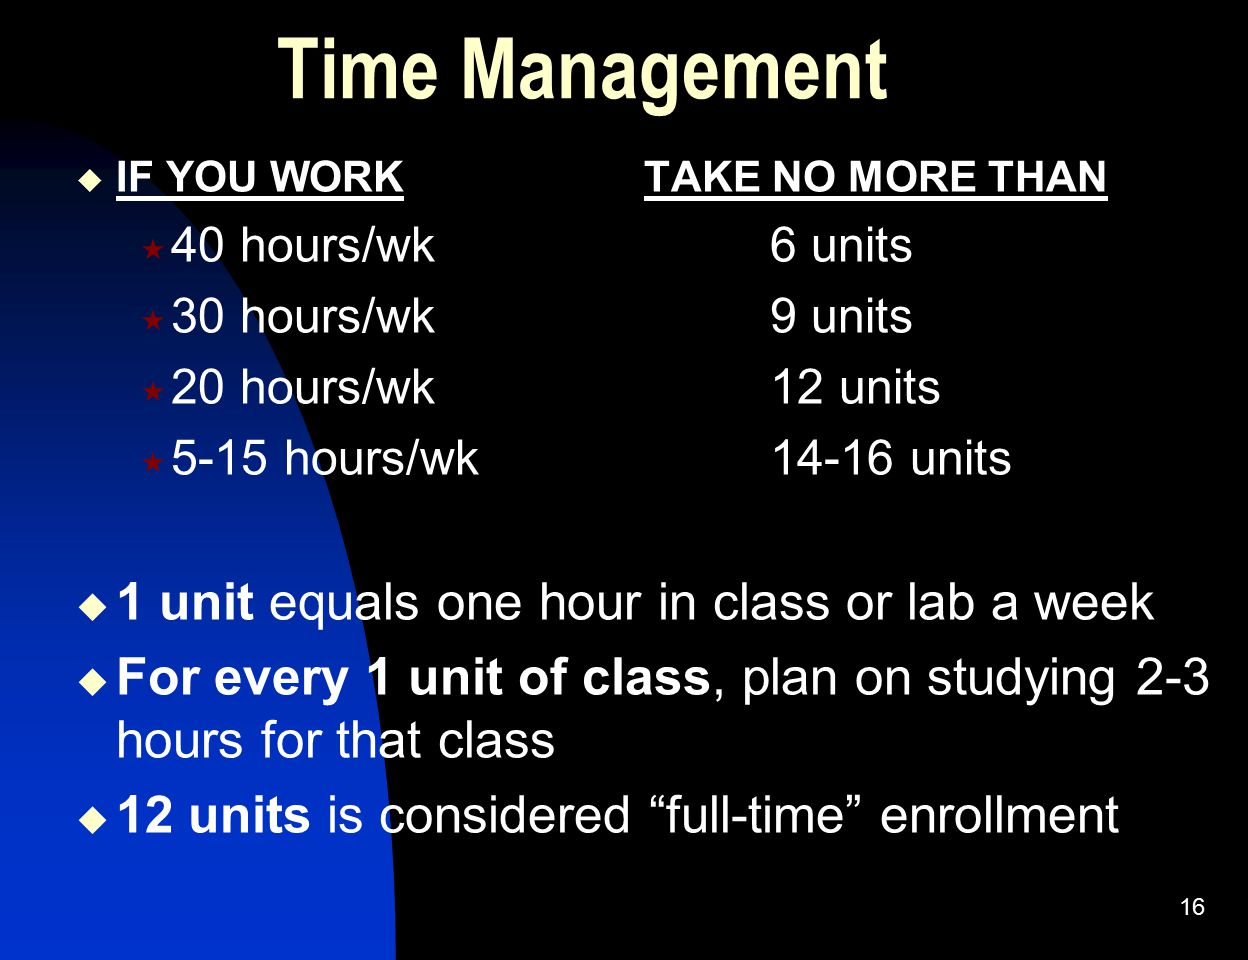 Time Management 1 unit equals one hour in class or lab a week